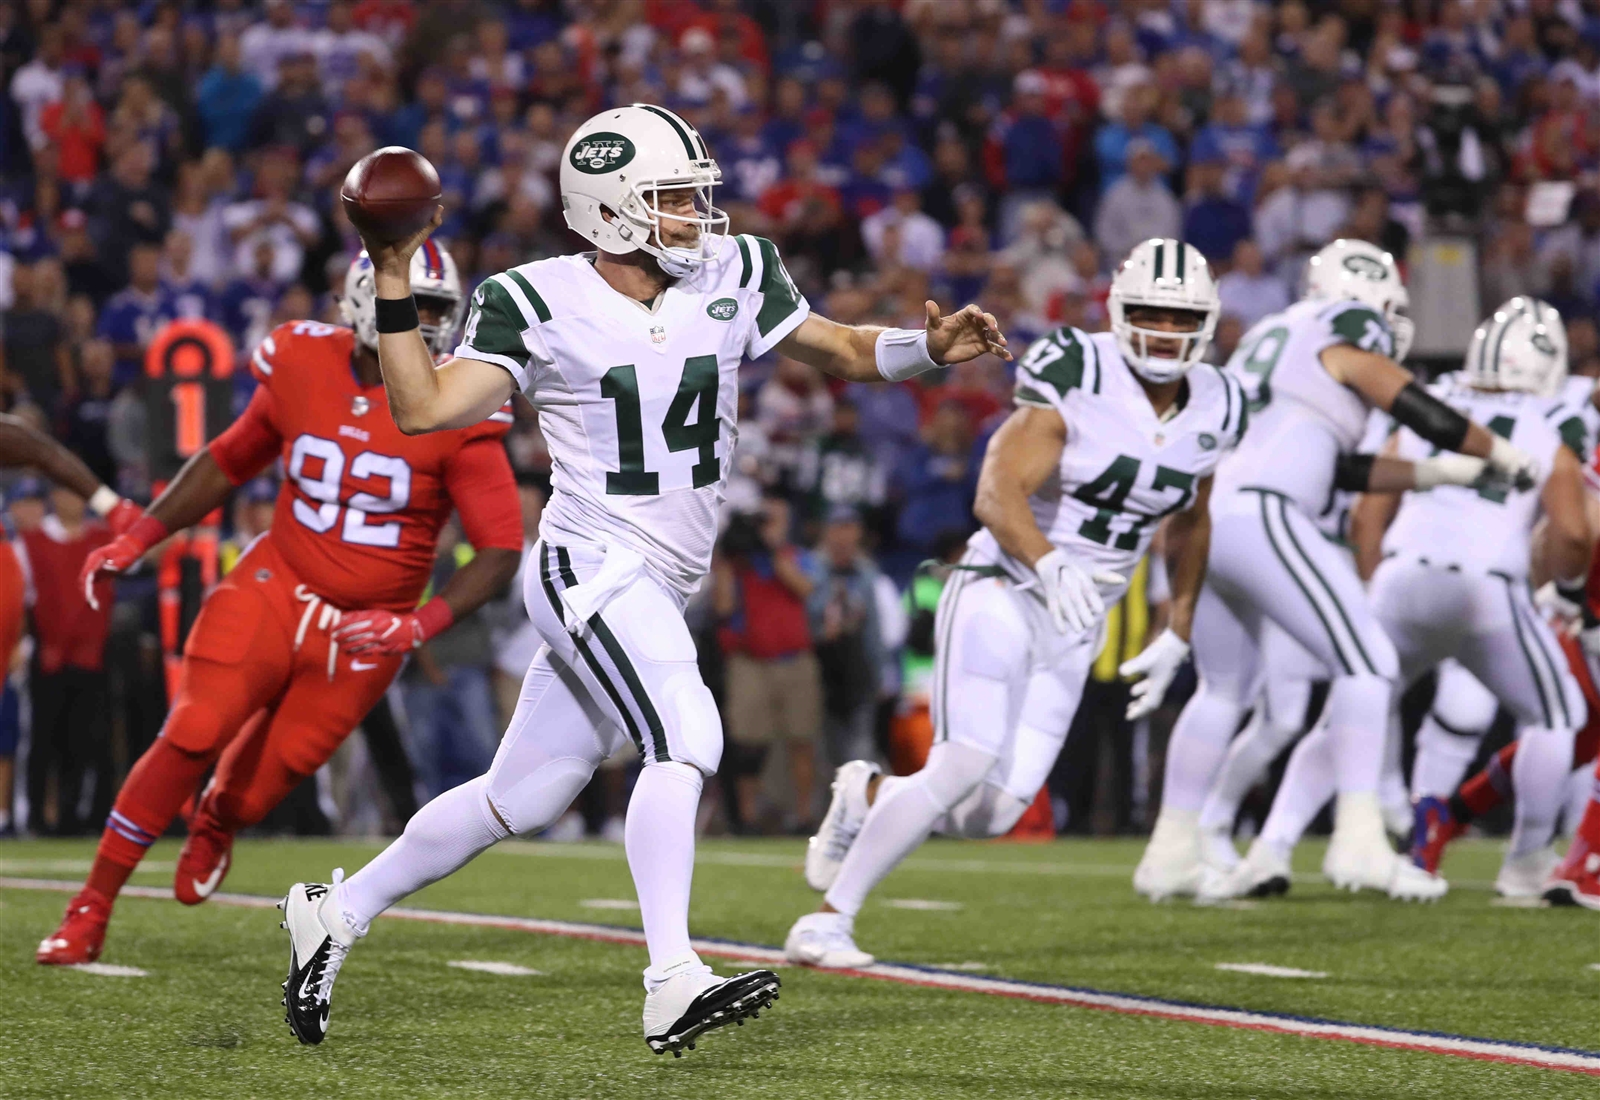 New York Jets quarterback Ryan Fitzpatrick (14) looks to throw during the first quarter.